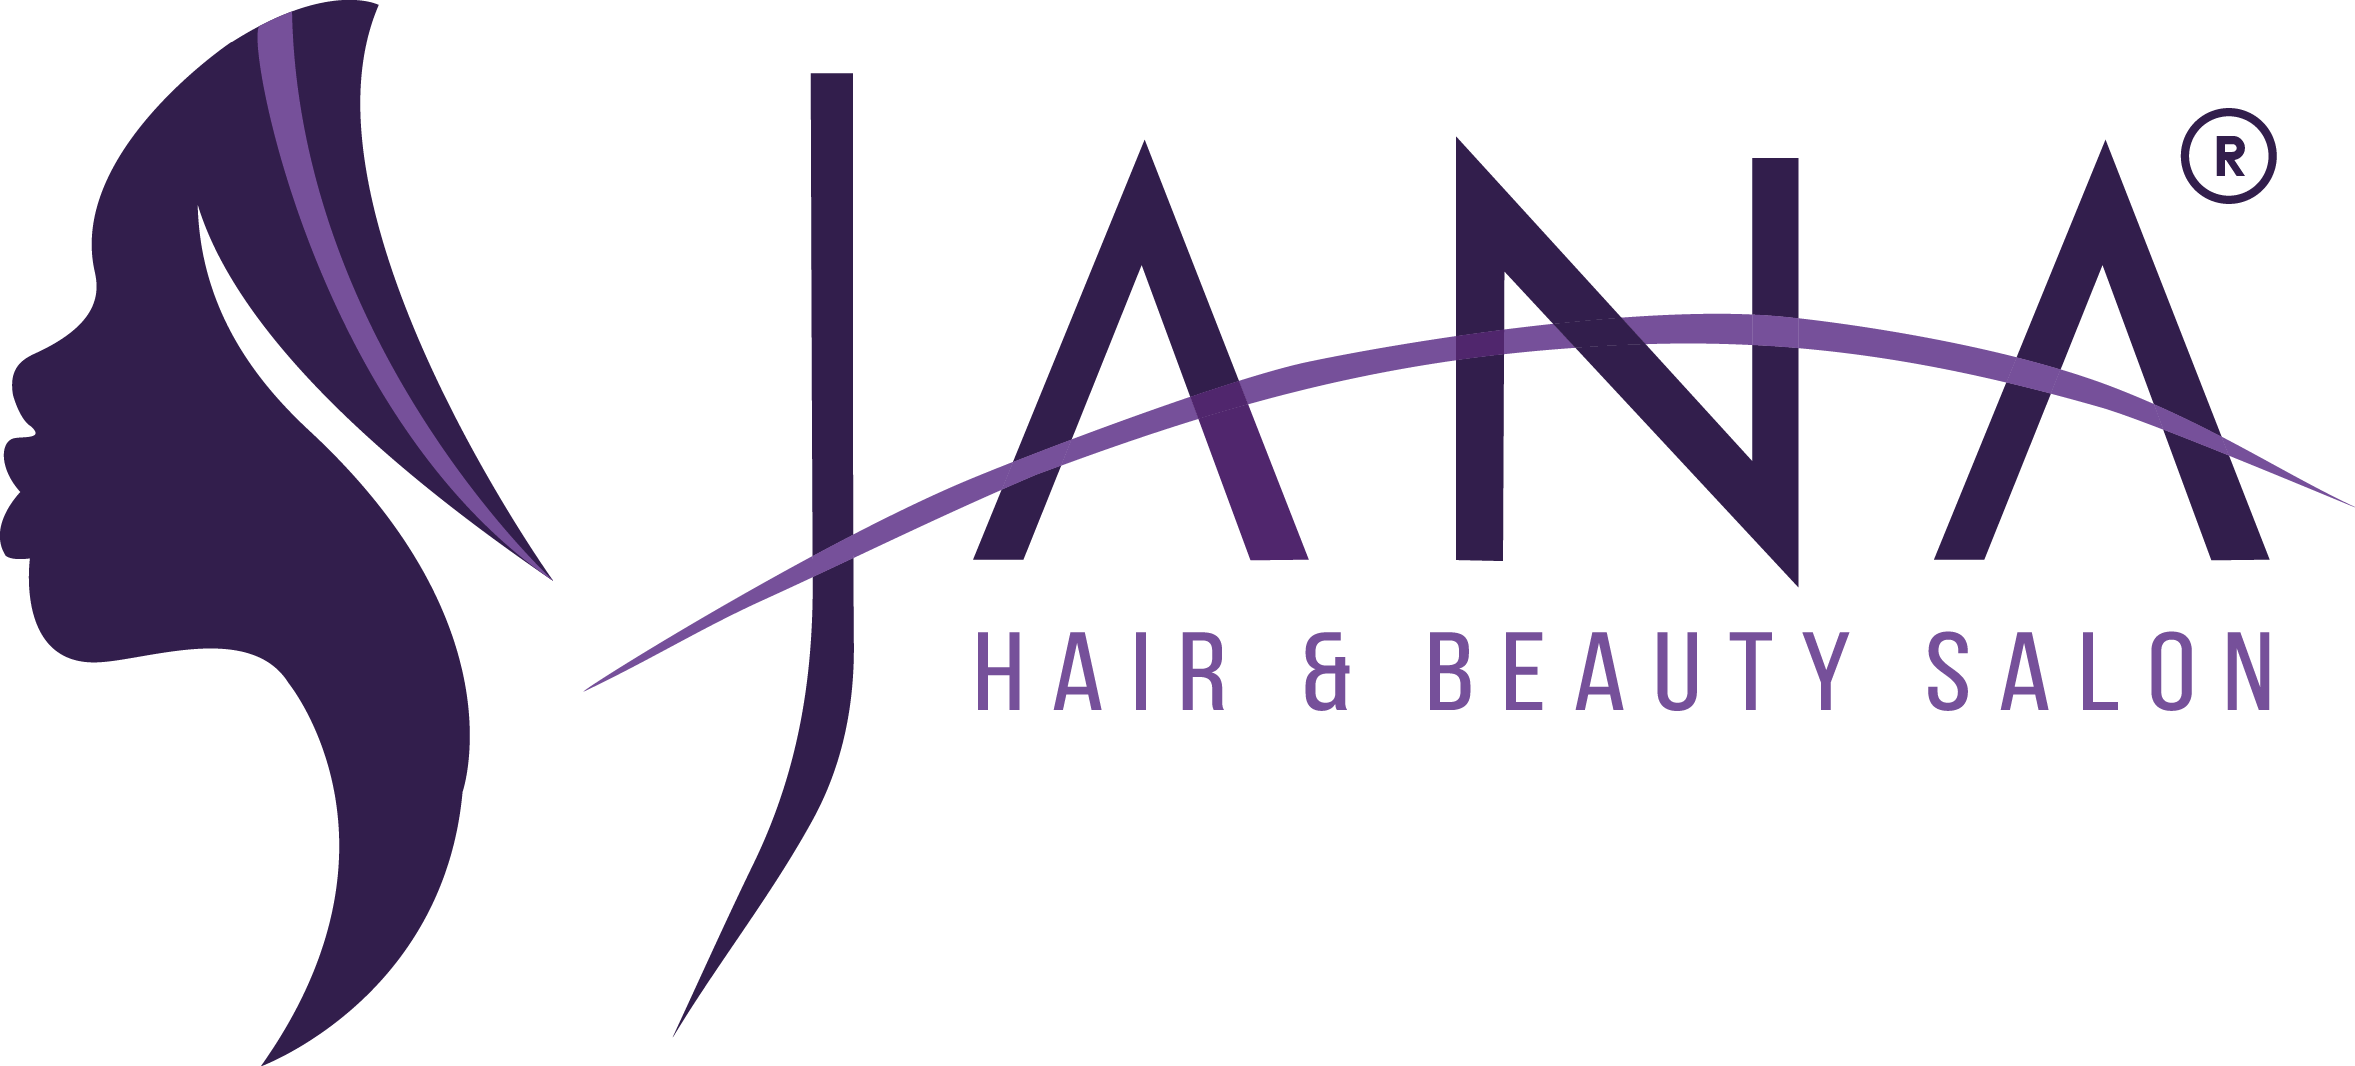 Jana Salon - Hair & Beauty